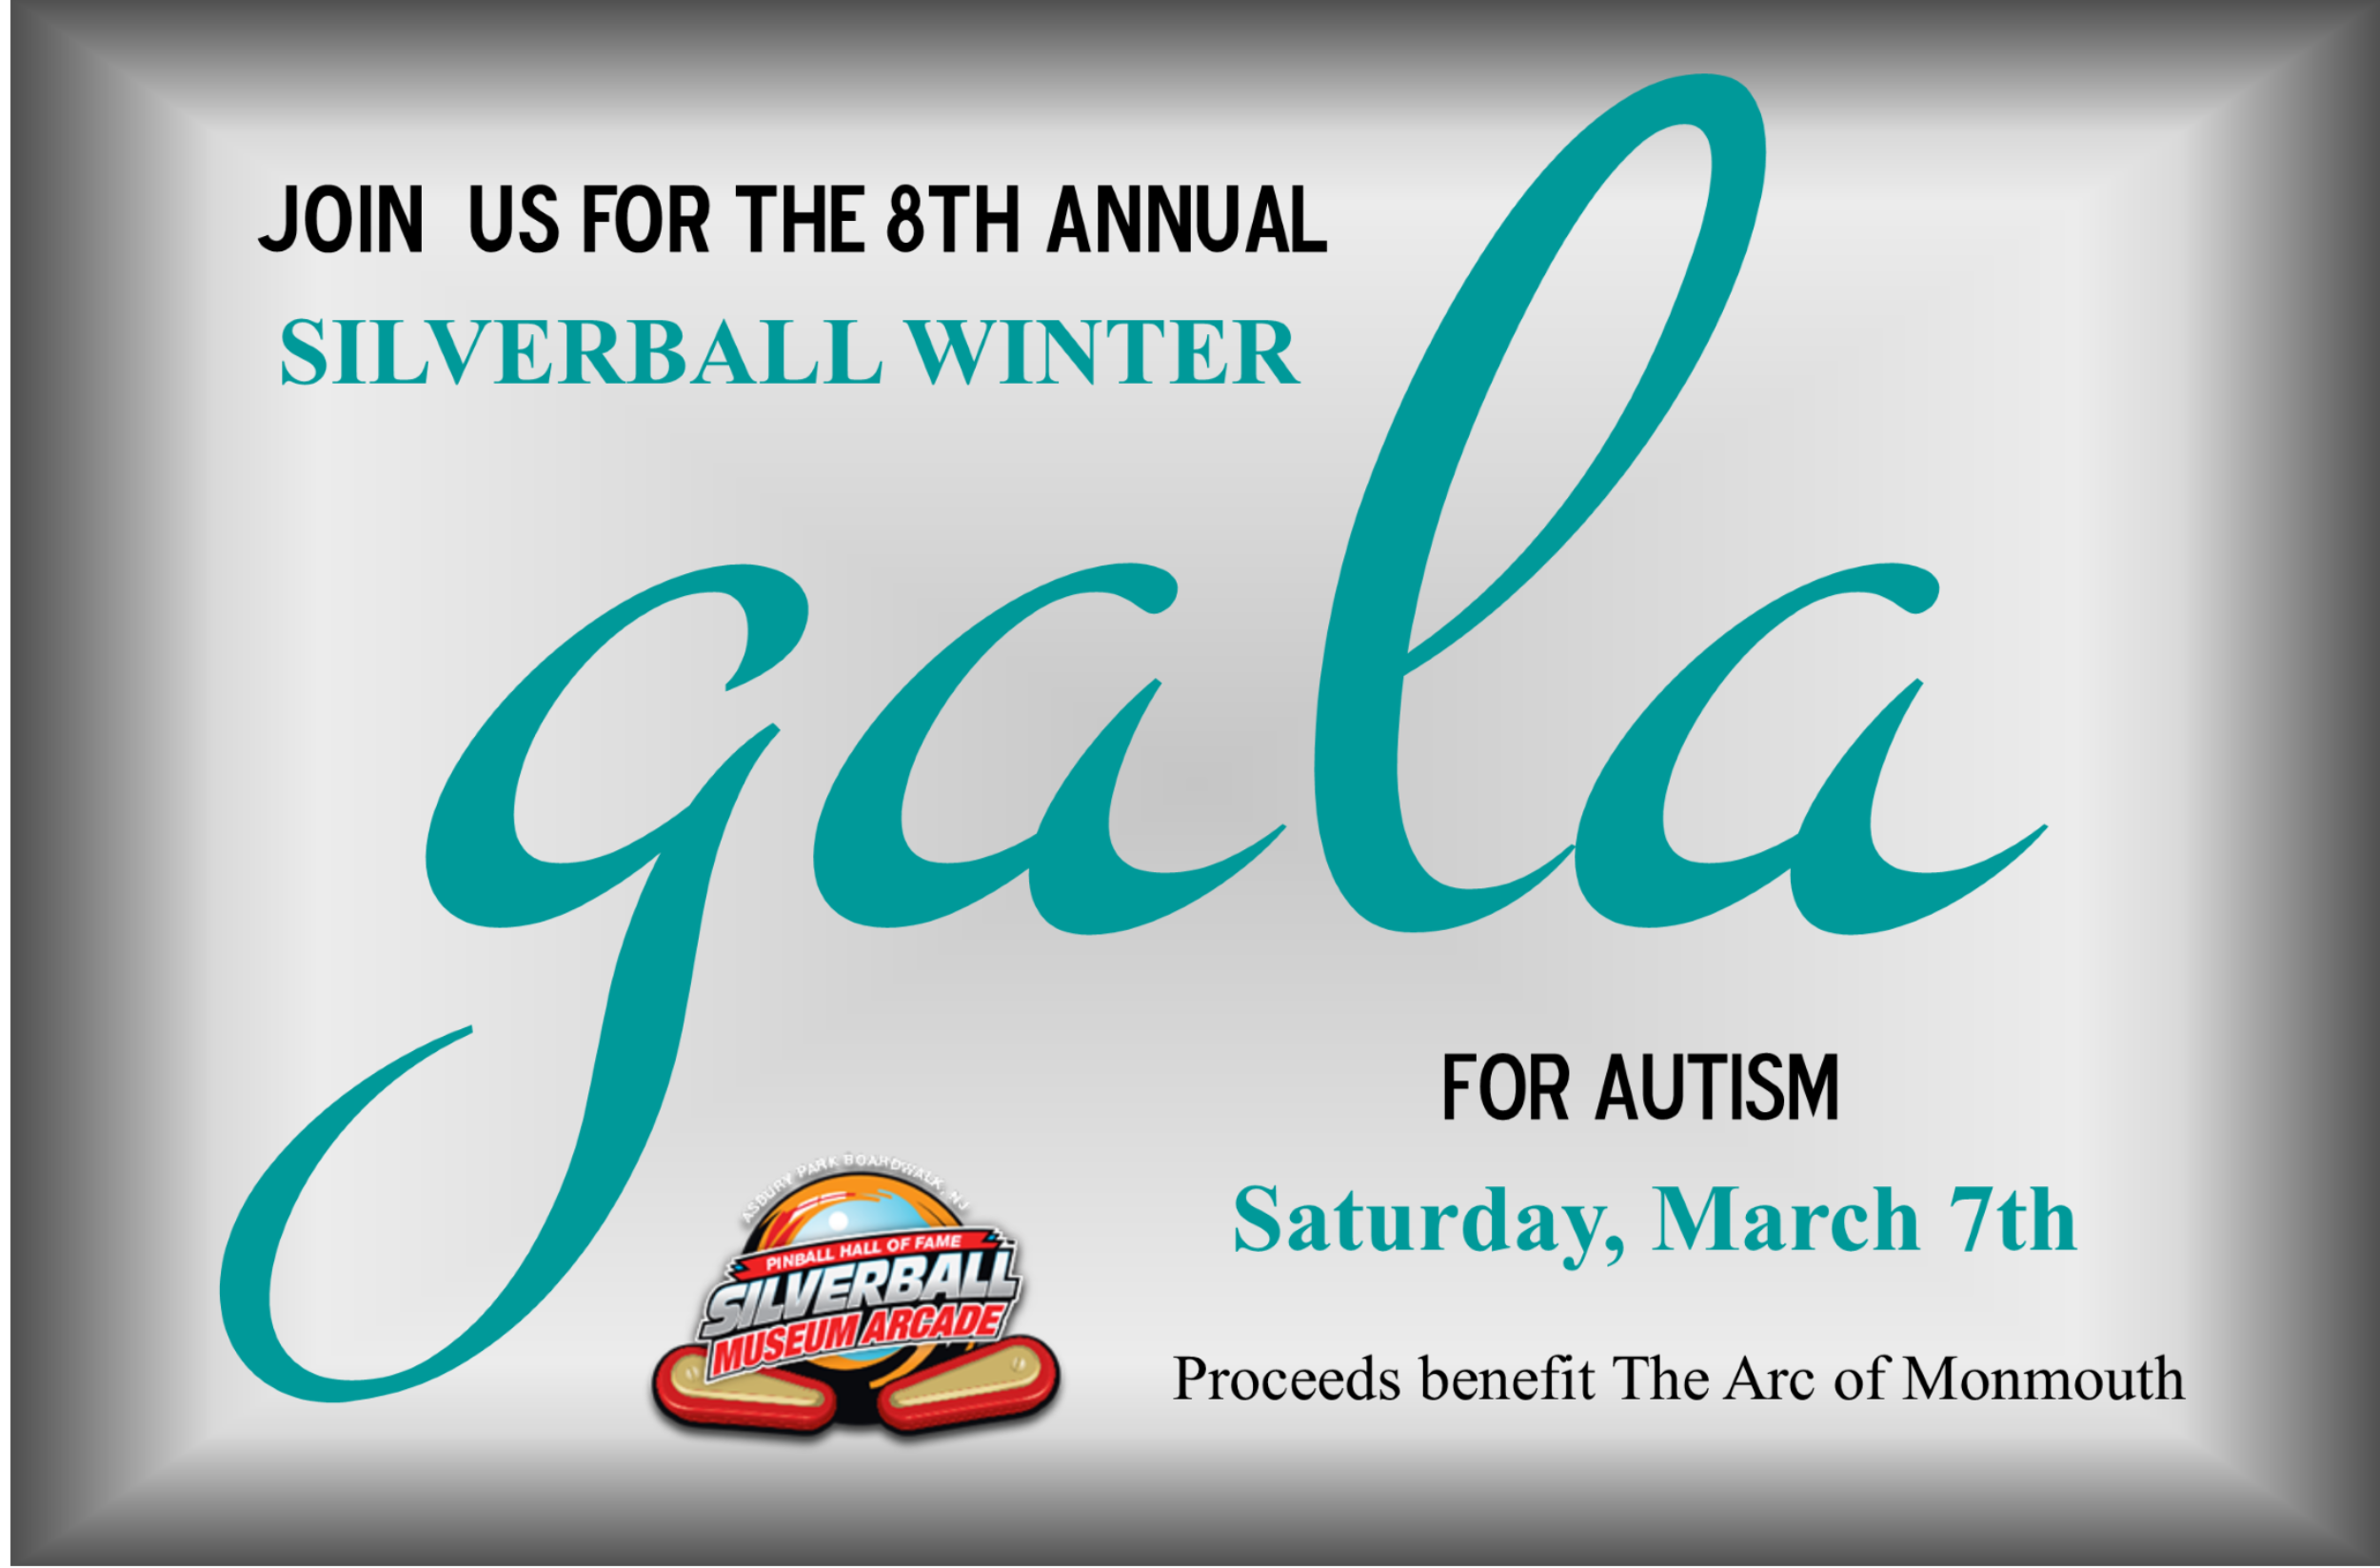 Silverball Gala to benefit The Arc of Monmouth